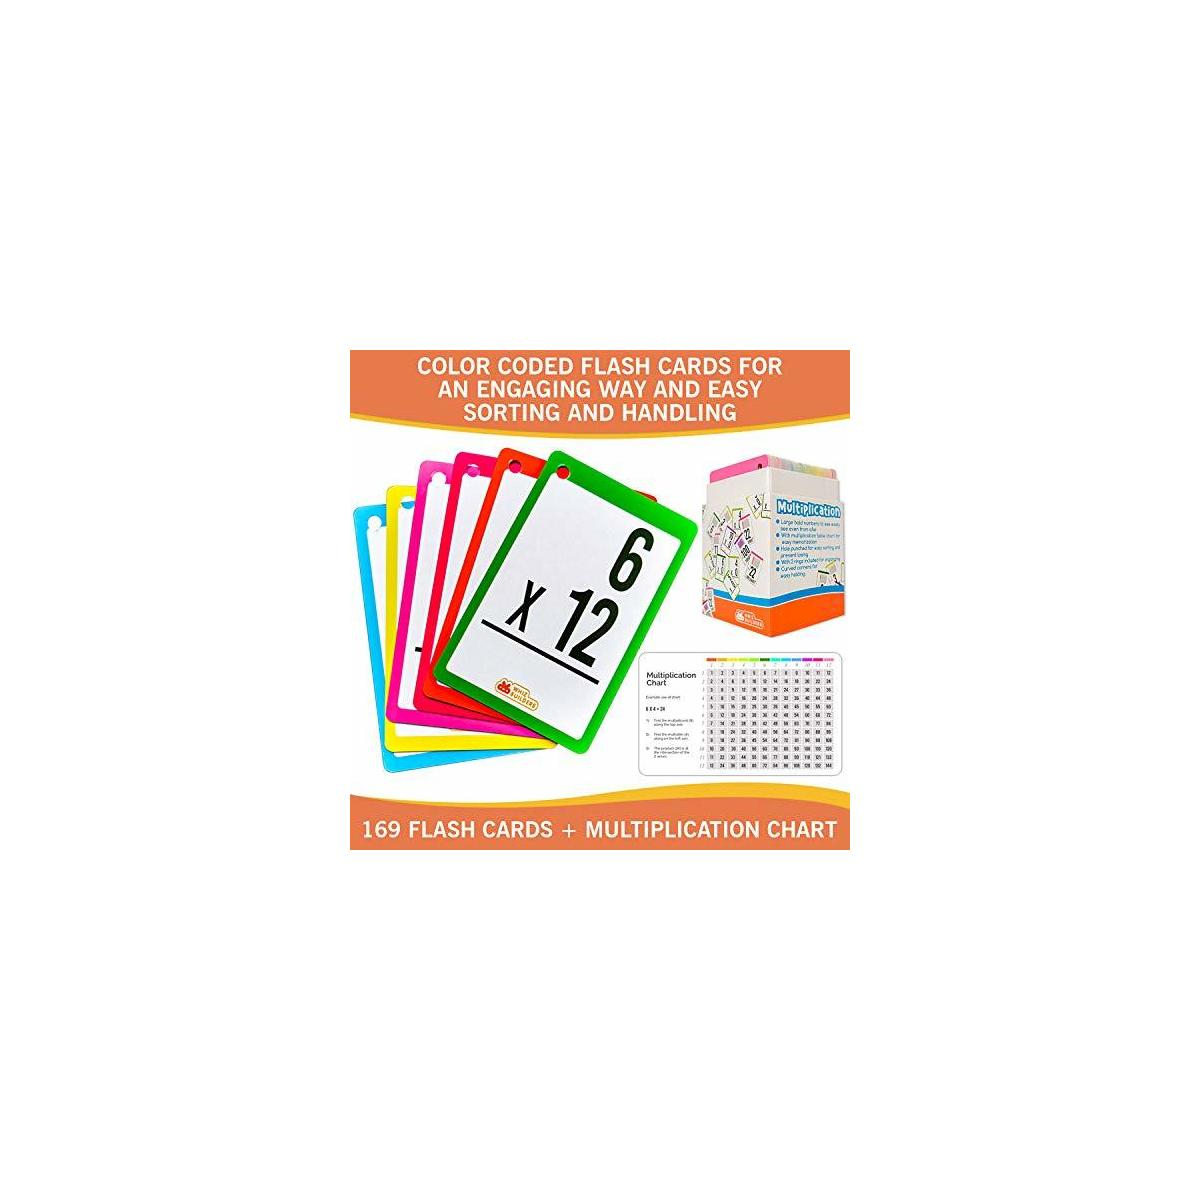 Whizbuilders Multiplication Flash Cards Set 169 Math Flash Cards With Flash  Card Rings For Easy Organization – Ideal Kids Flash Cards For 3Rd, 4Th,